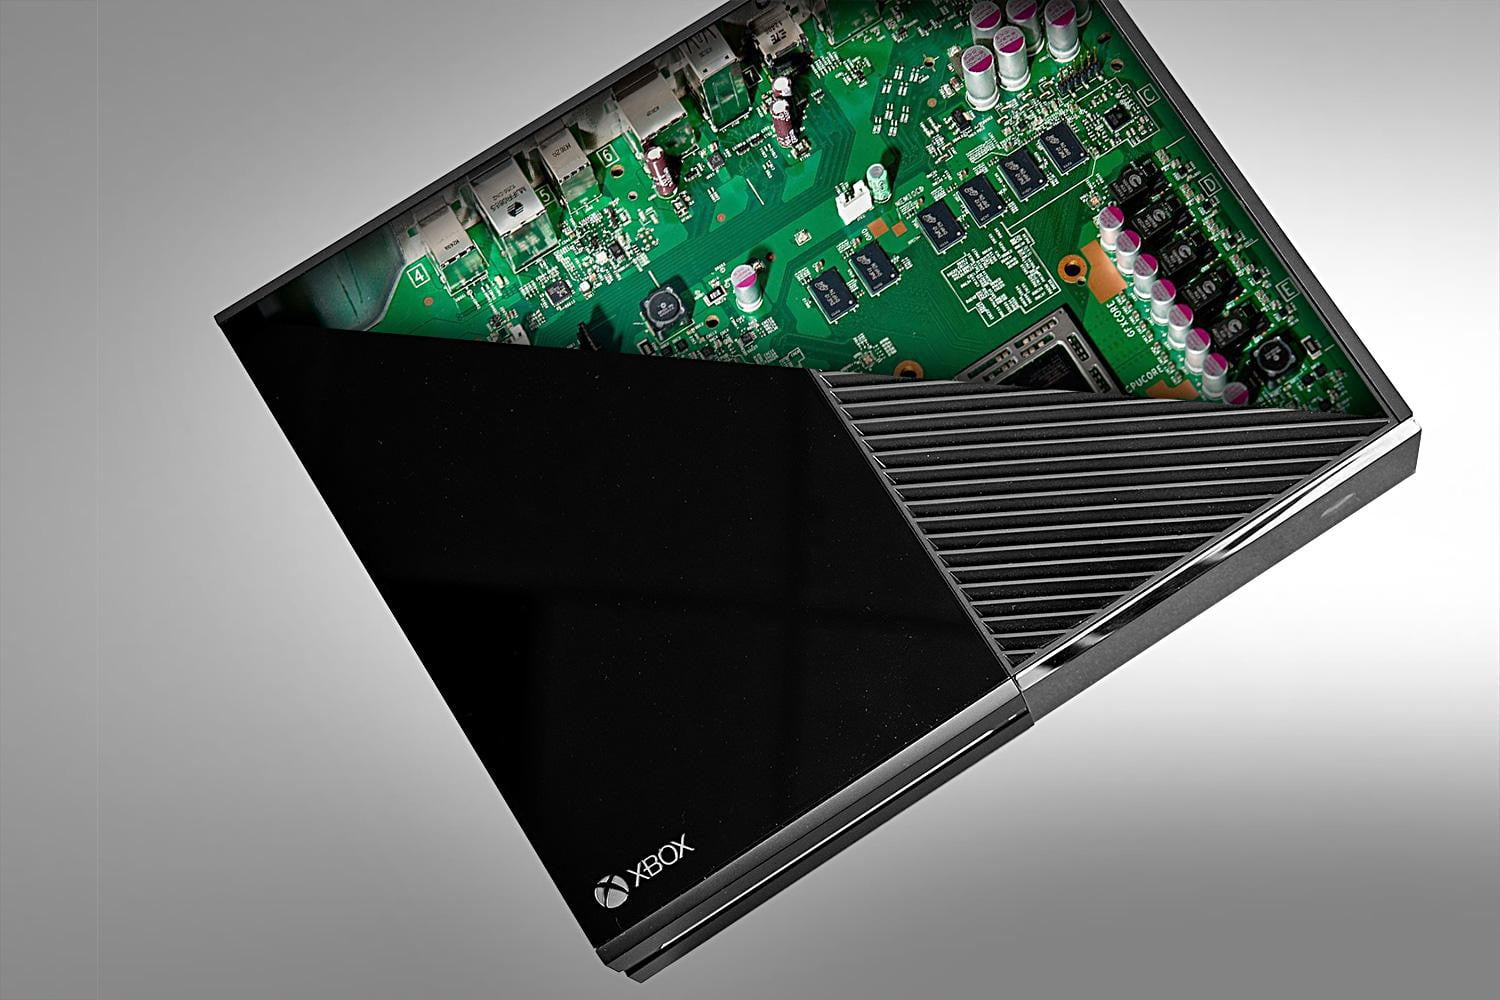 How The Xbox One Is A Stealth Pc And Why It Matters